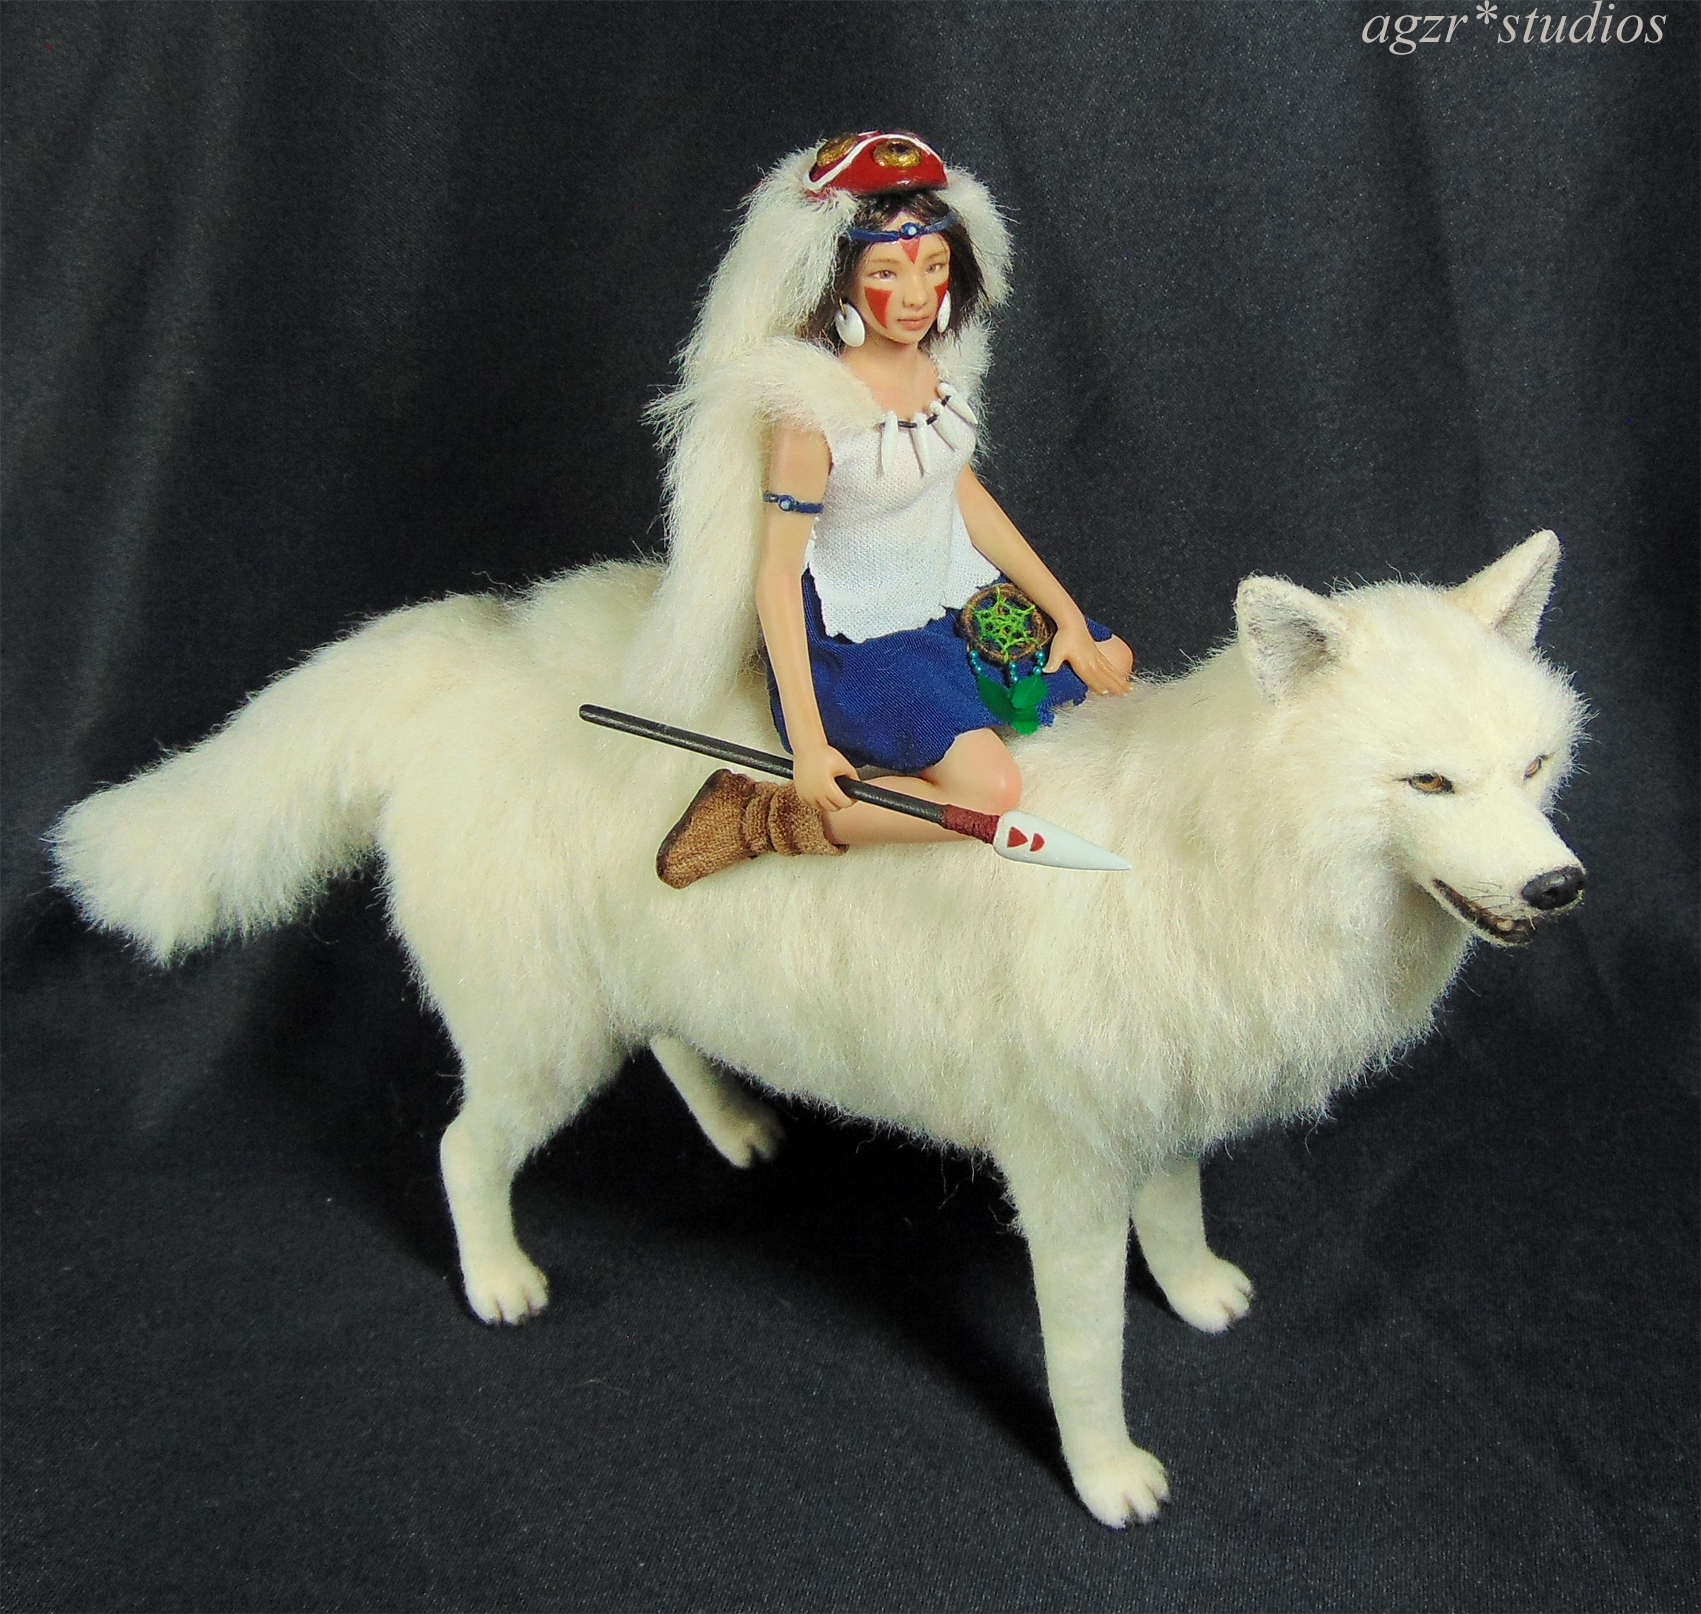 The Princess Mononoke Miniature Doll Wolf Dollhouse 1:12 scale agzr studios